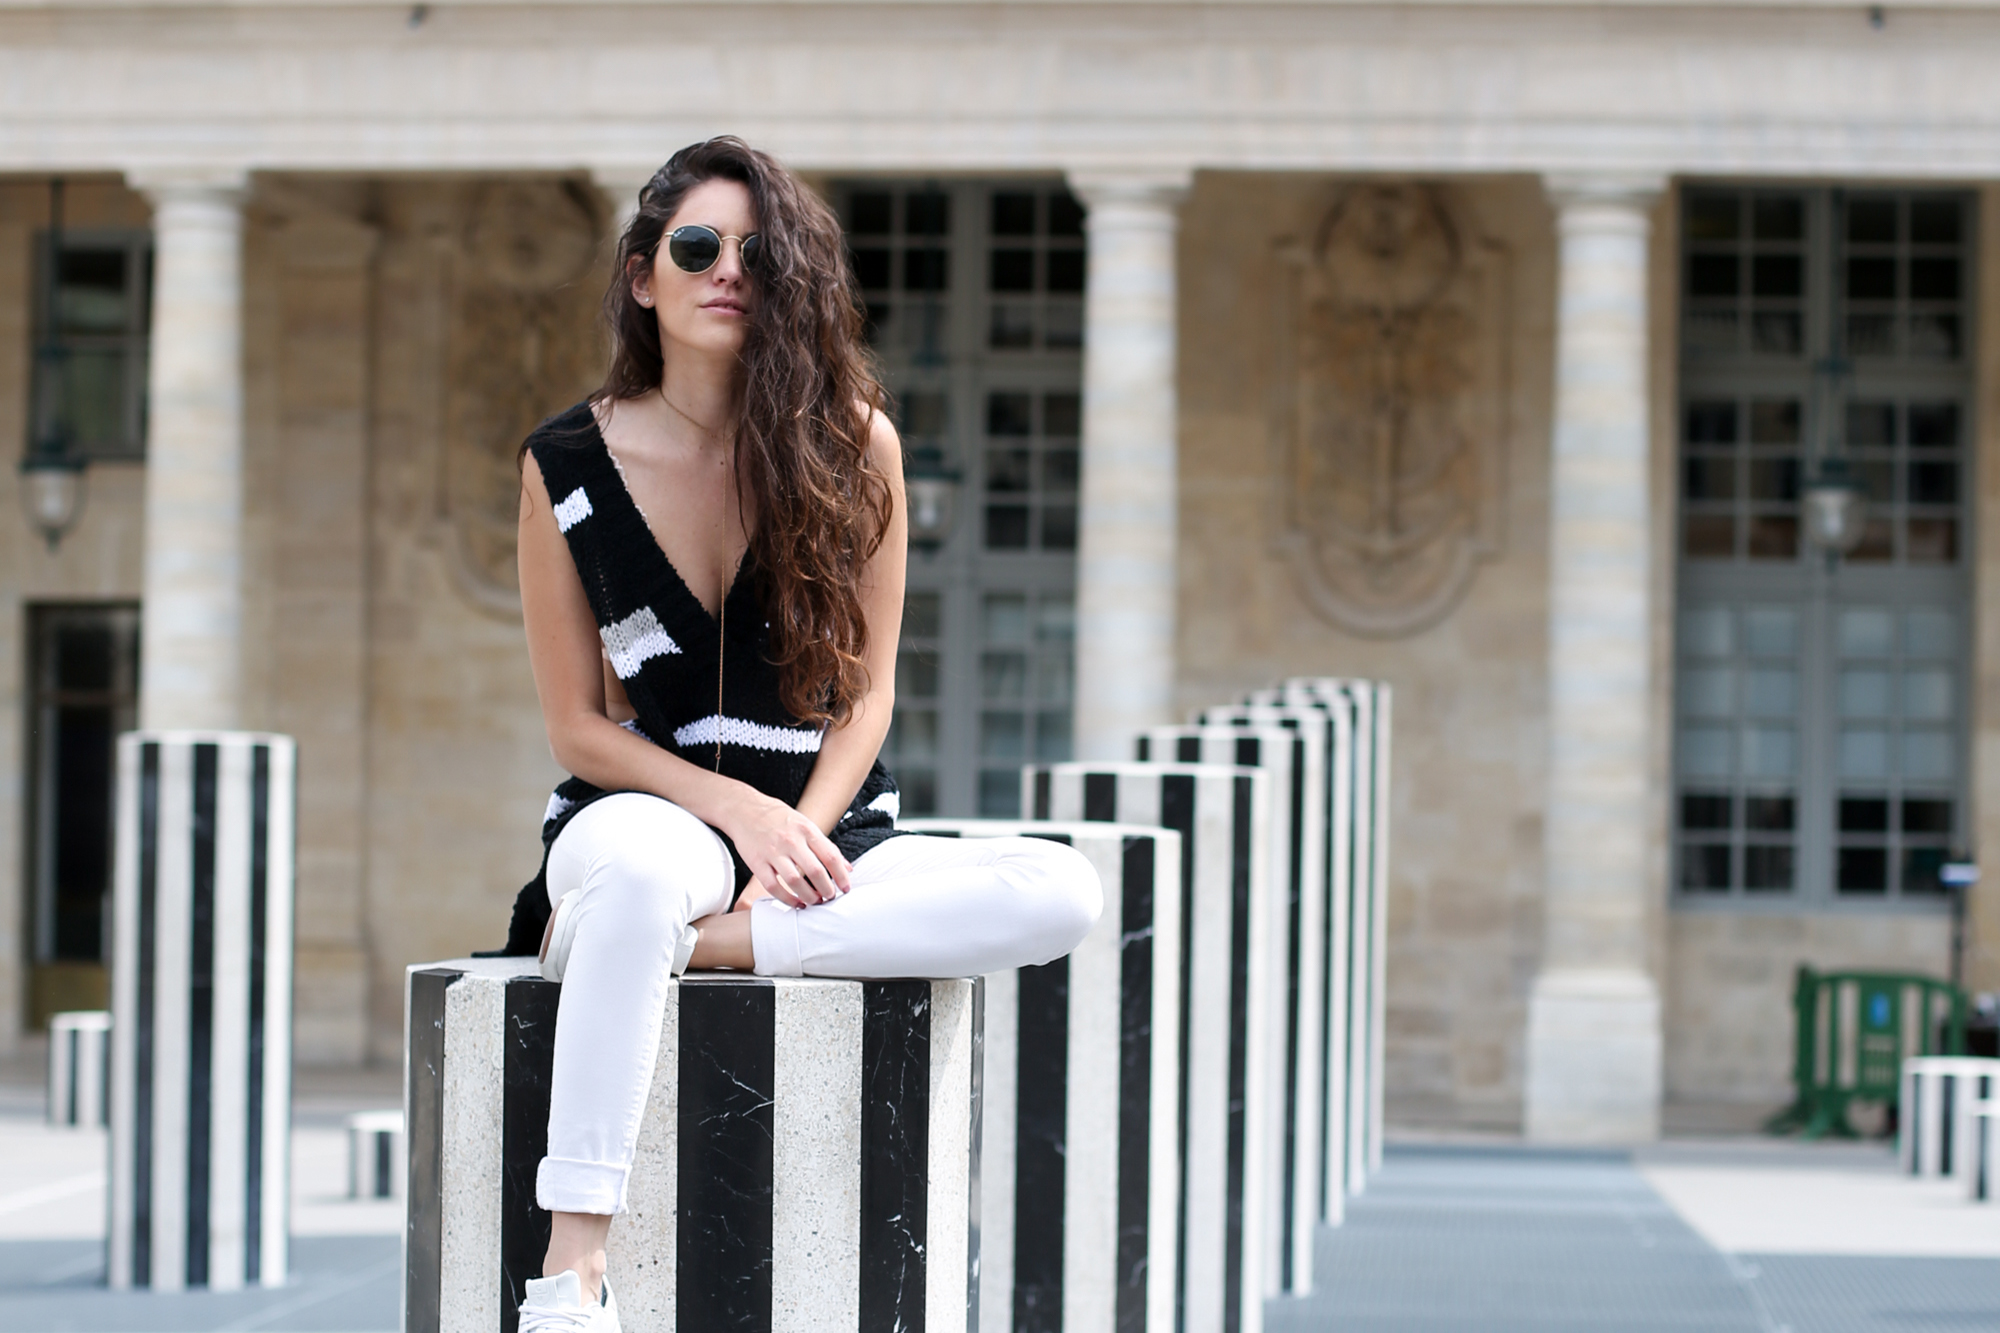 where to go in Paris, what to wear in paris, casual striped, spring outfit ideas, spring style, how to style a sweater tank, parisian style, casual parisian style, casual style, how to style sneakers, travel outfit ideas